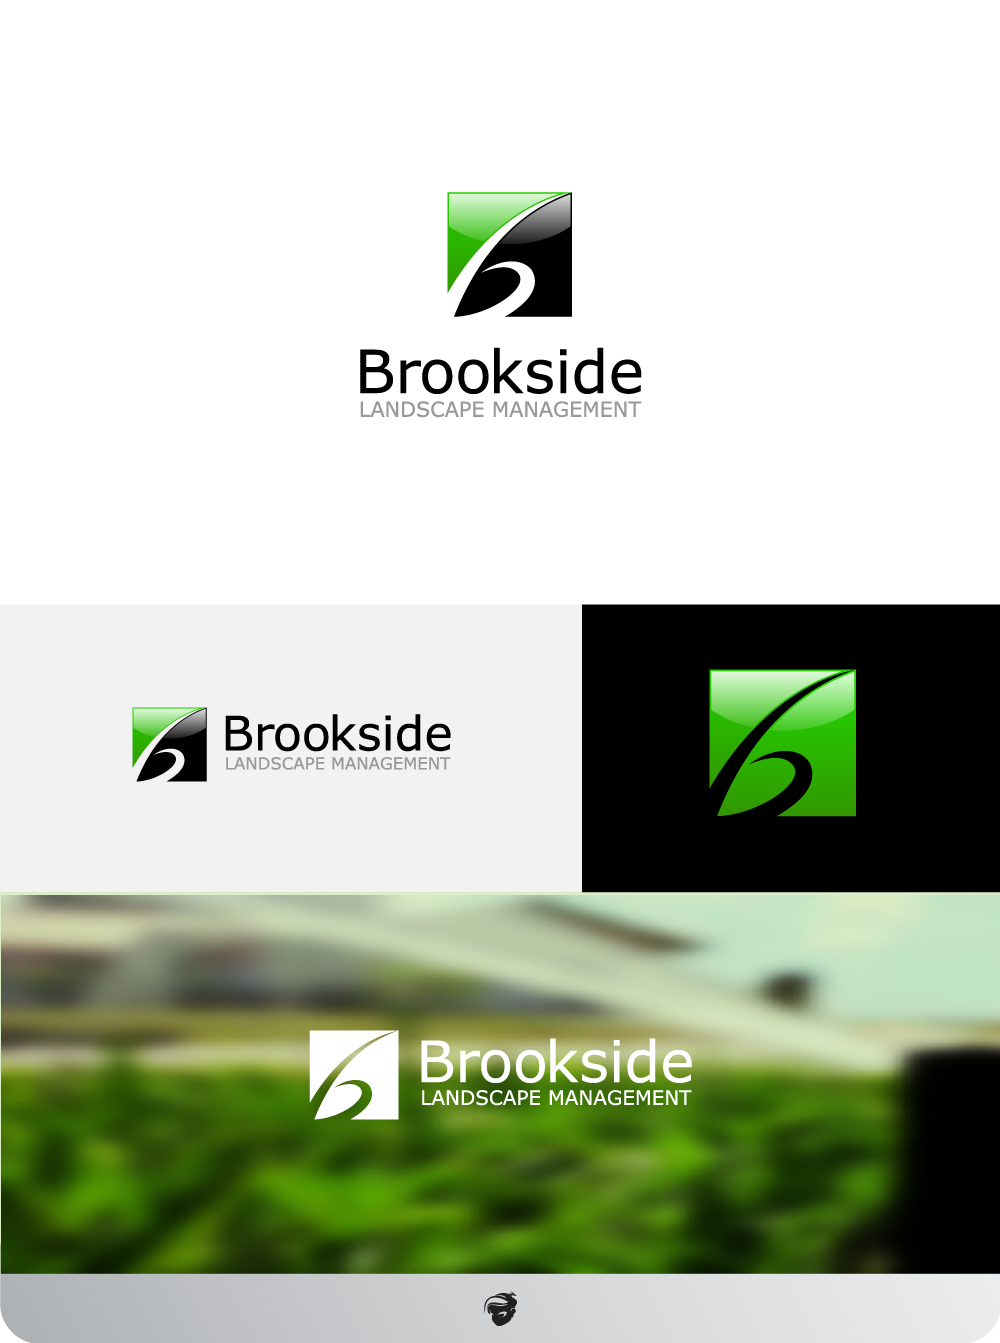 Logo Design by zesthar - Entry No. 177 in the Logo Design Contest New Logo Design for Brookside Landscape Management.